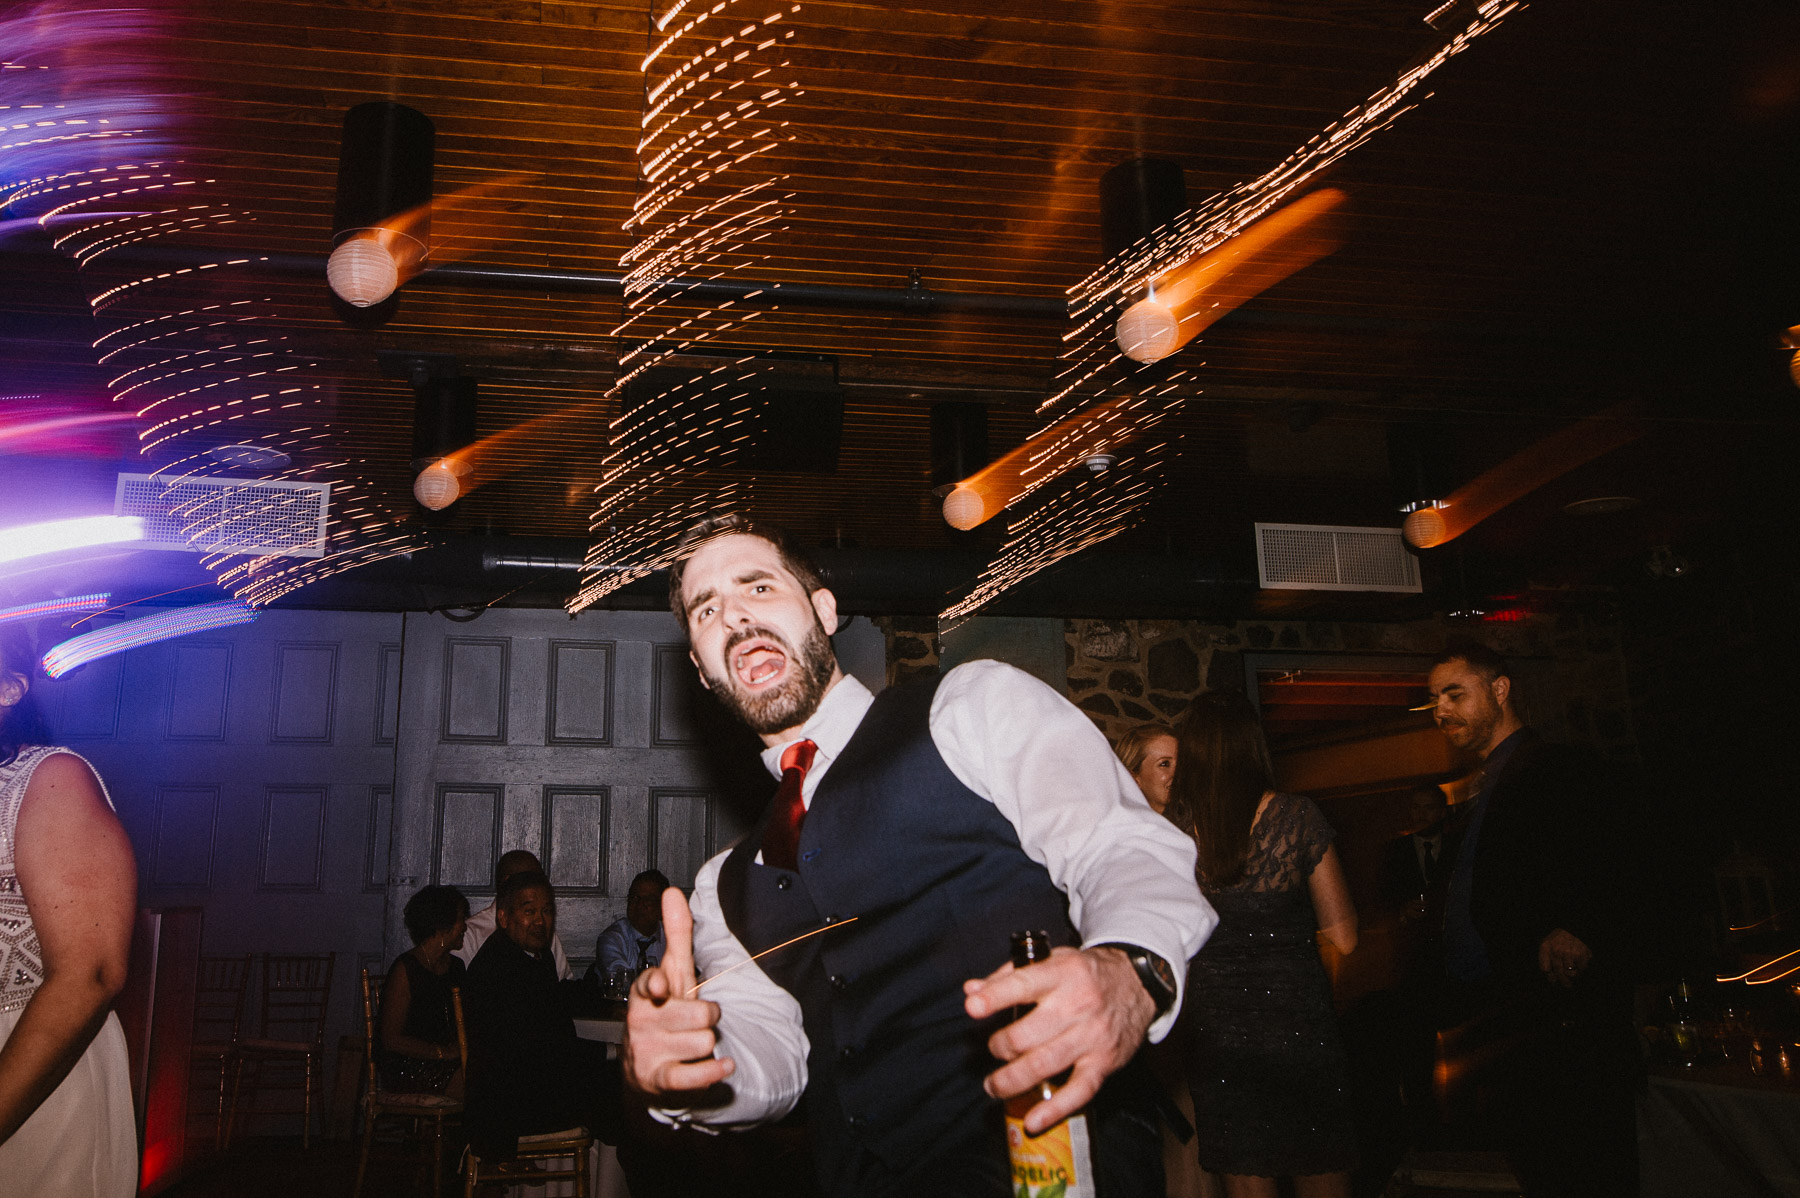 The_Carriage_House_at_Rockwood_Park_wedding_photo094.jpg